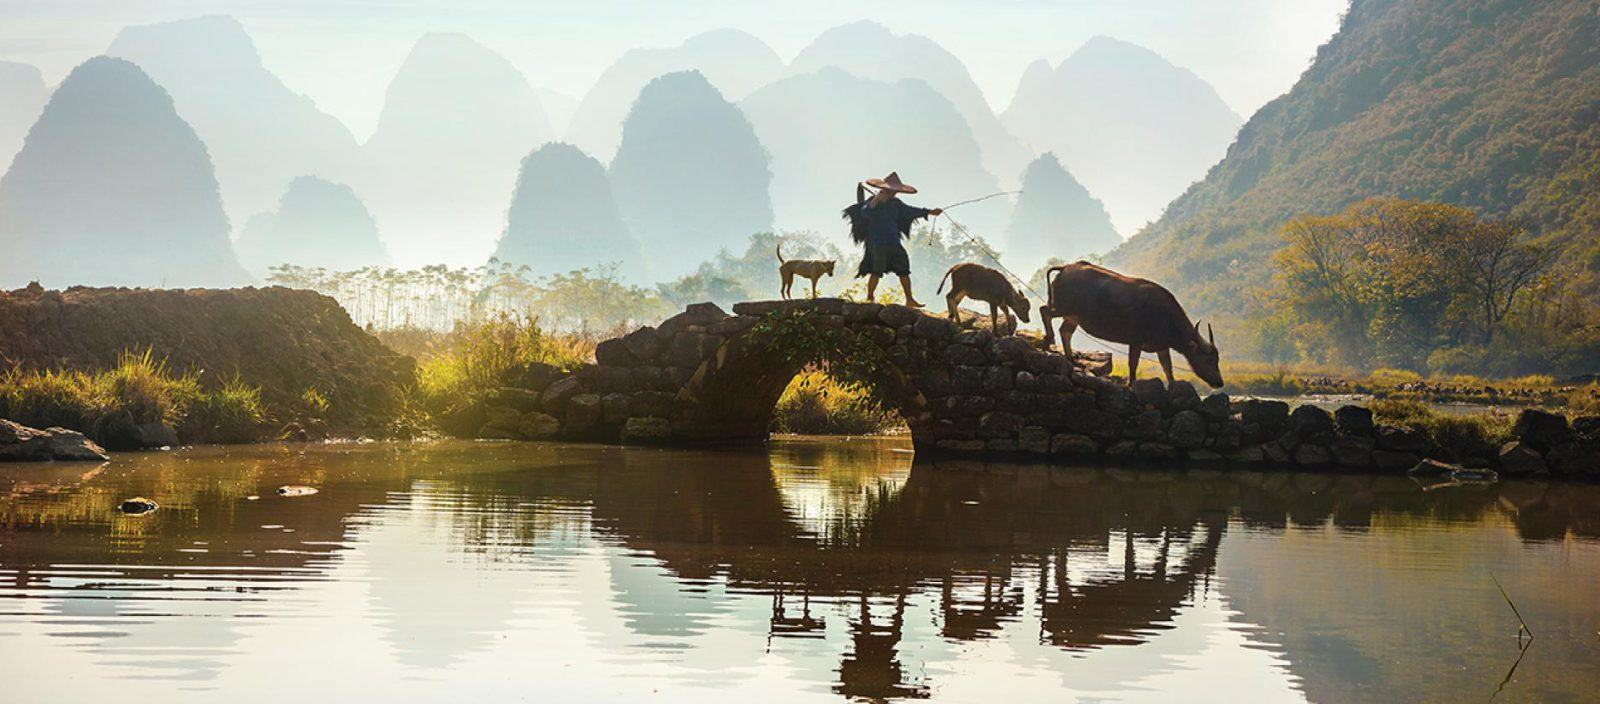 China: Imperial Treasures and Natural Wonders